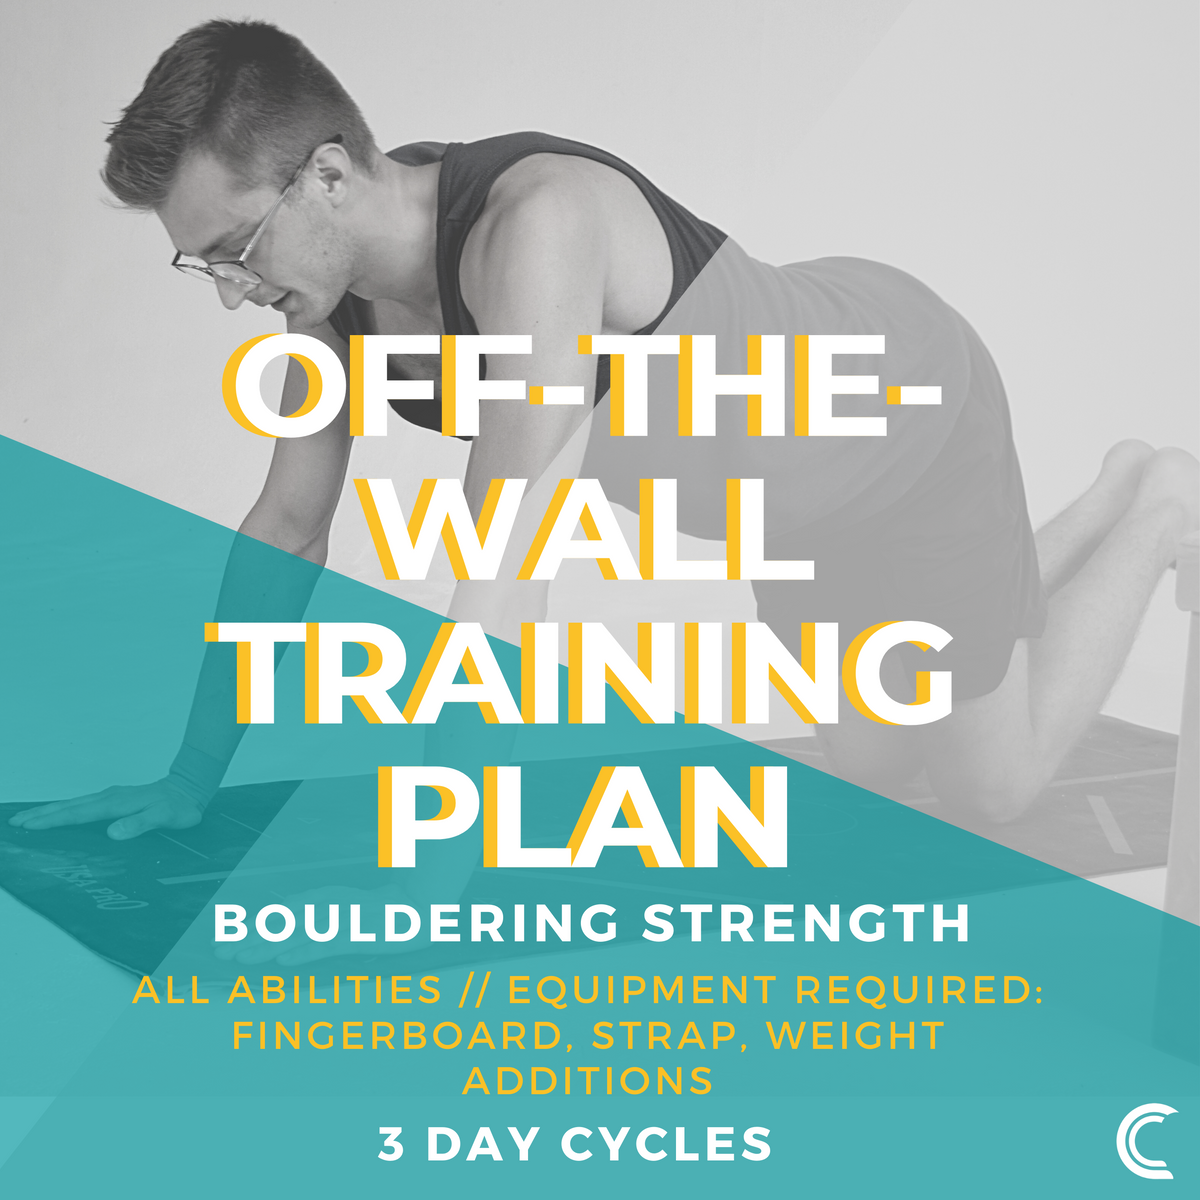 At Home Training Plan - Bouldering Strength